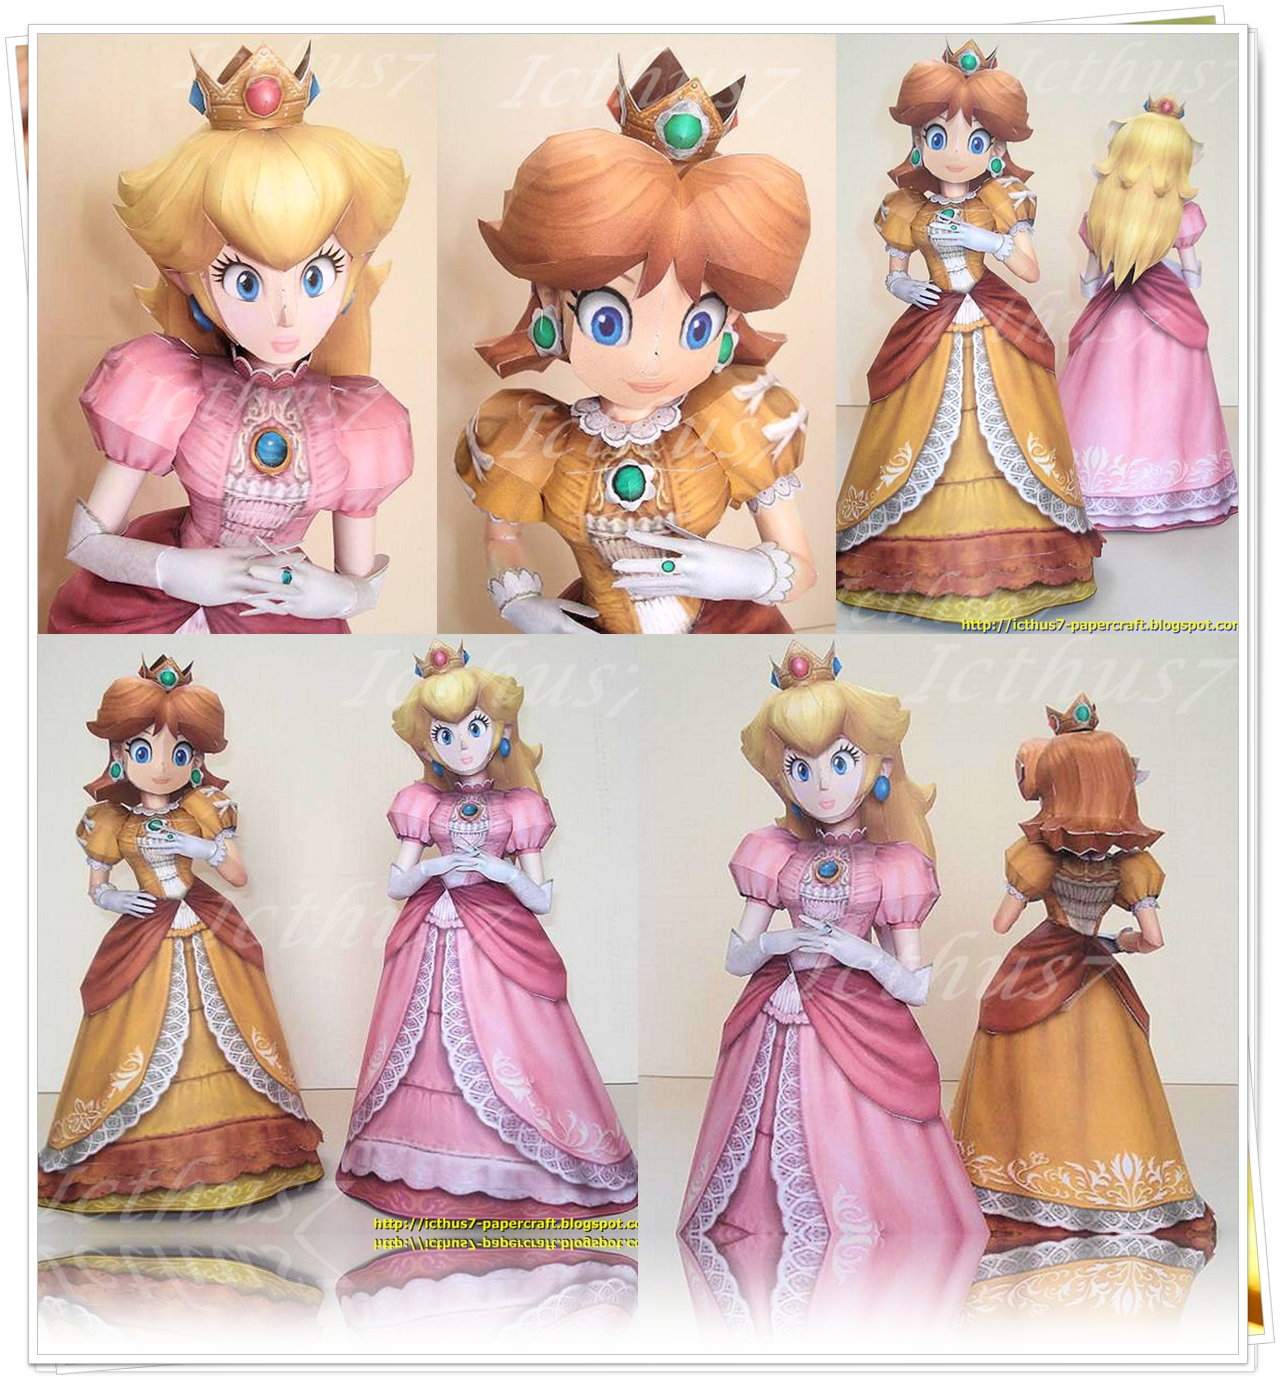 Princess Peach and Daisy. by enrique3